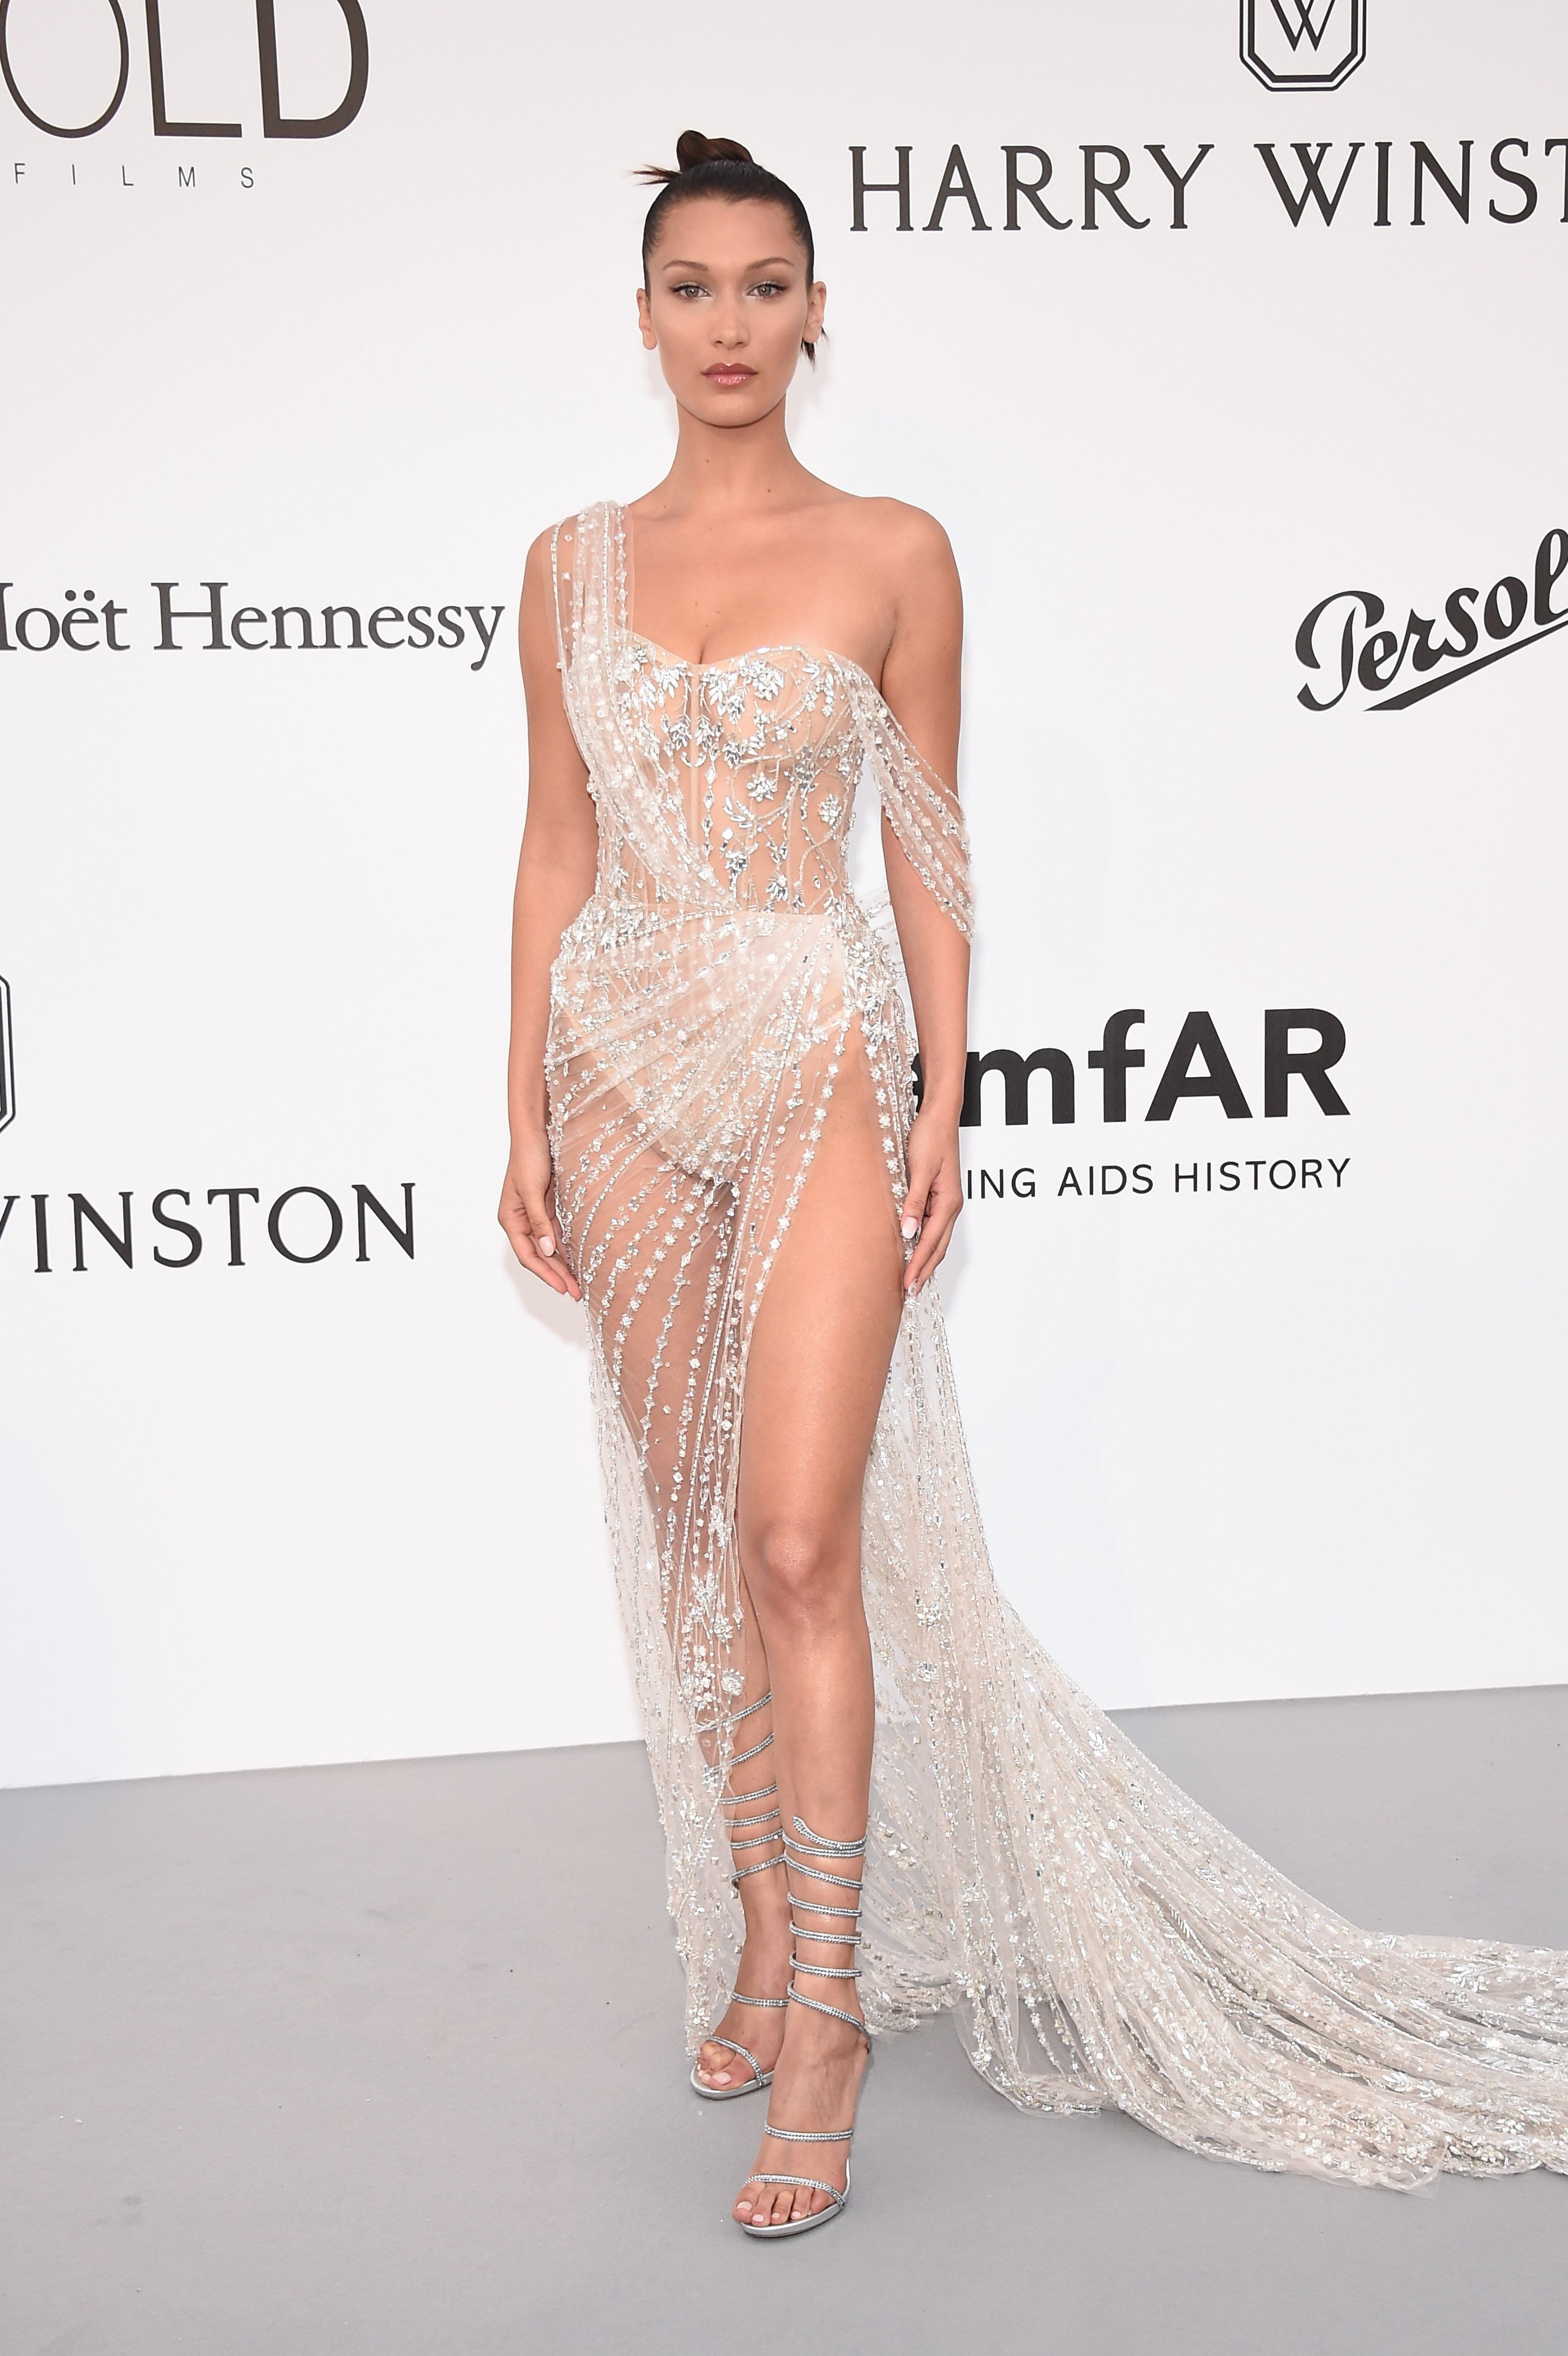 bella hadid wearing a sheer crystal couture dress at cannes film festival 2017